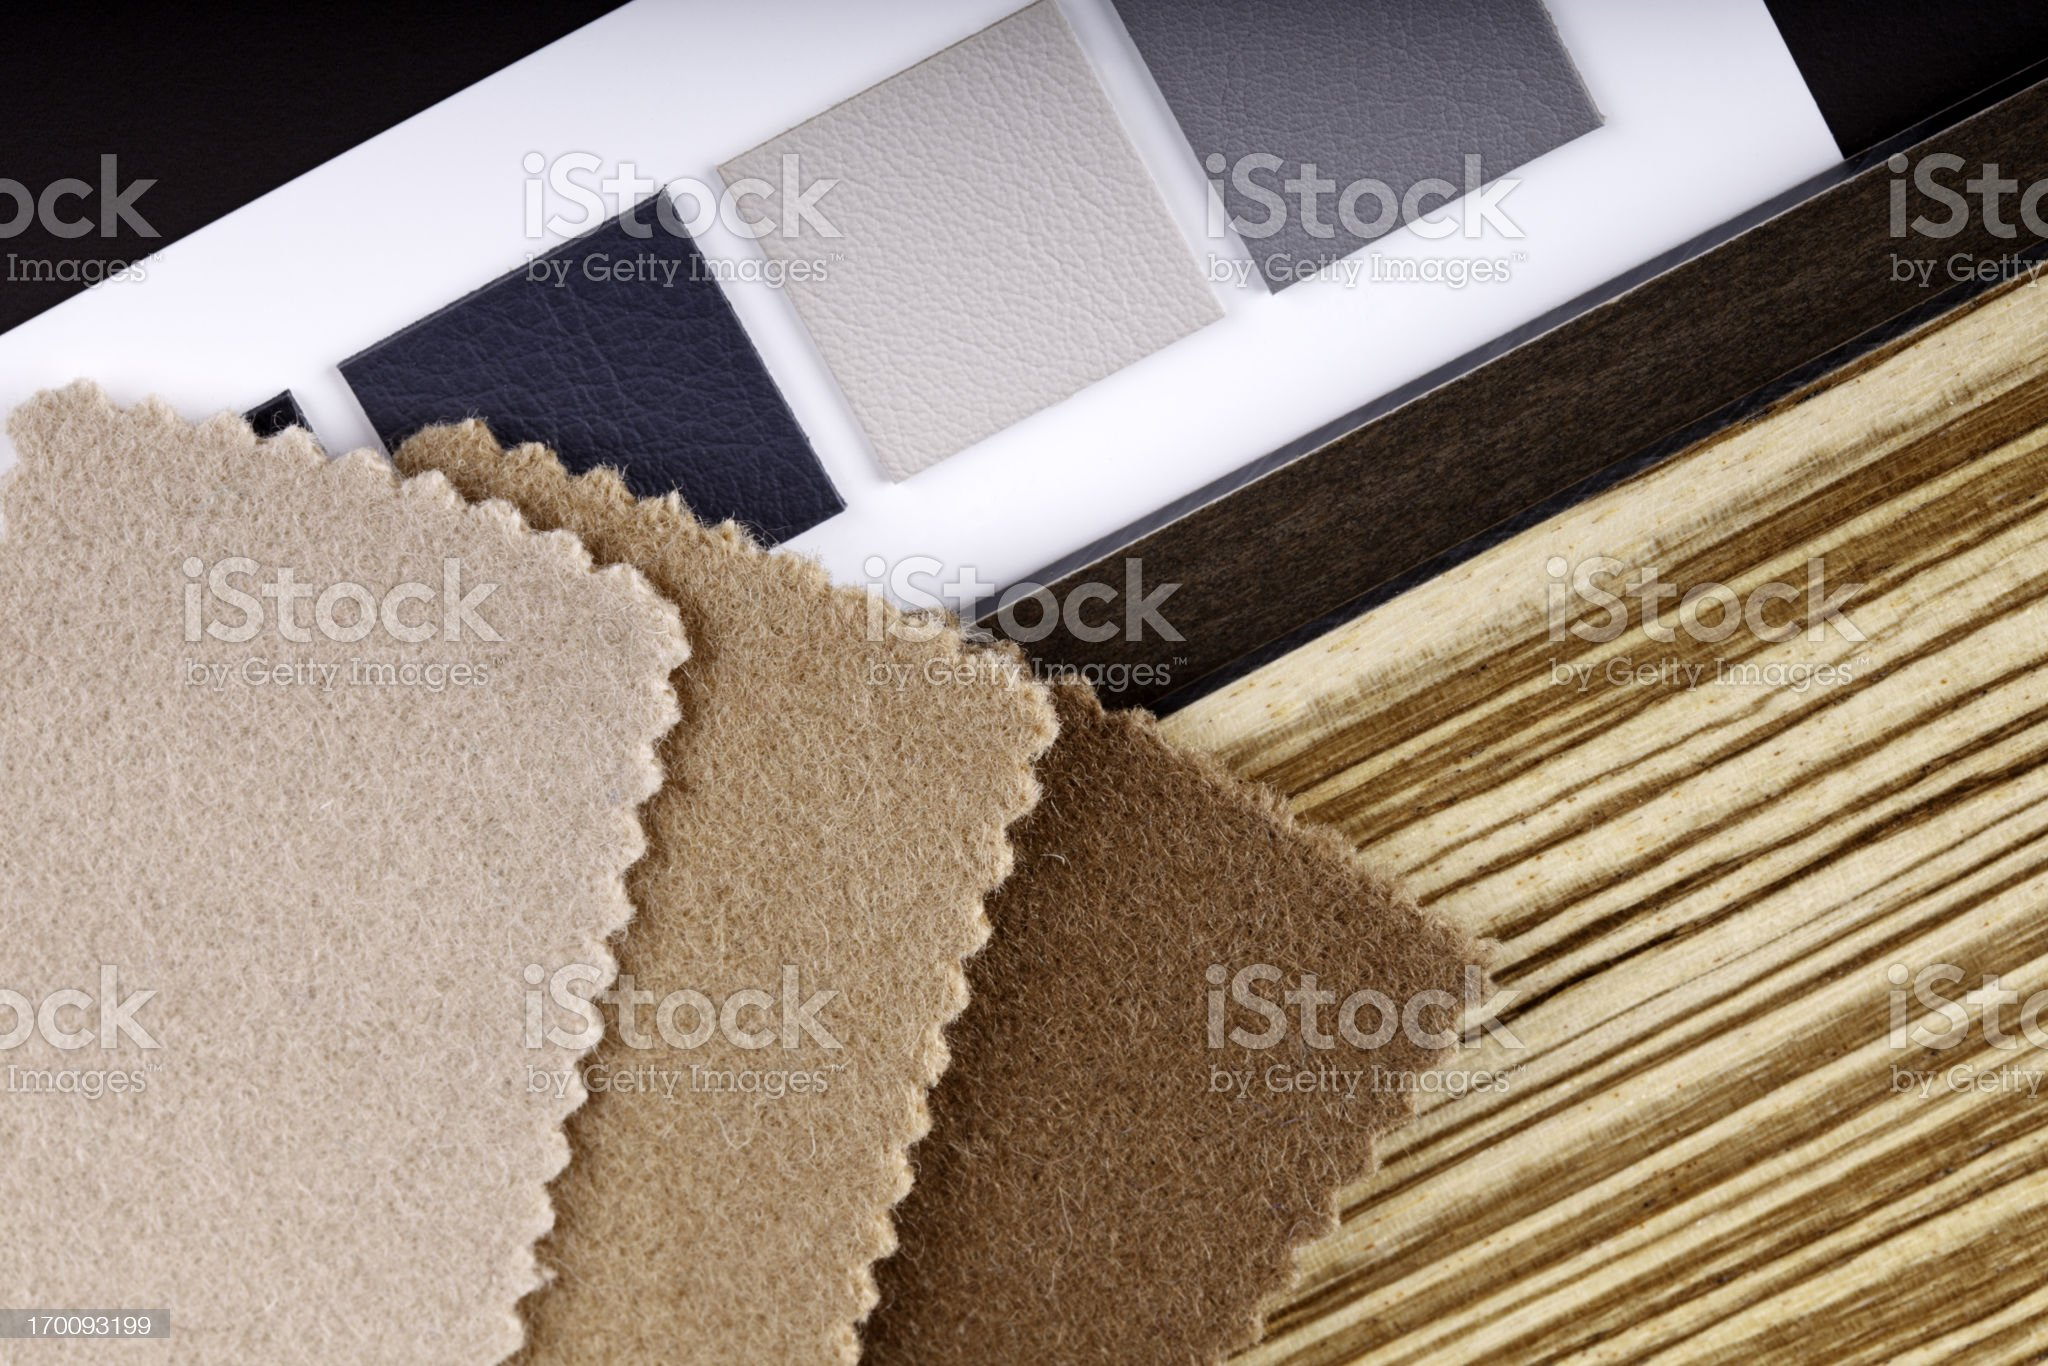 Fabric, Wood and Leather Swatches royalty-free stock photo